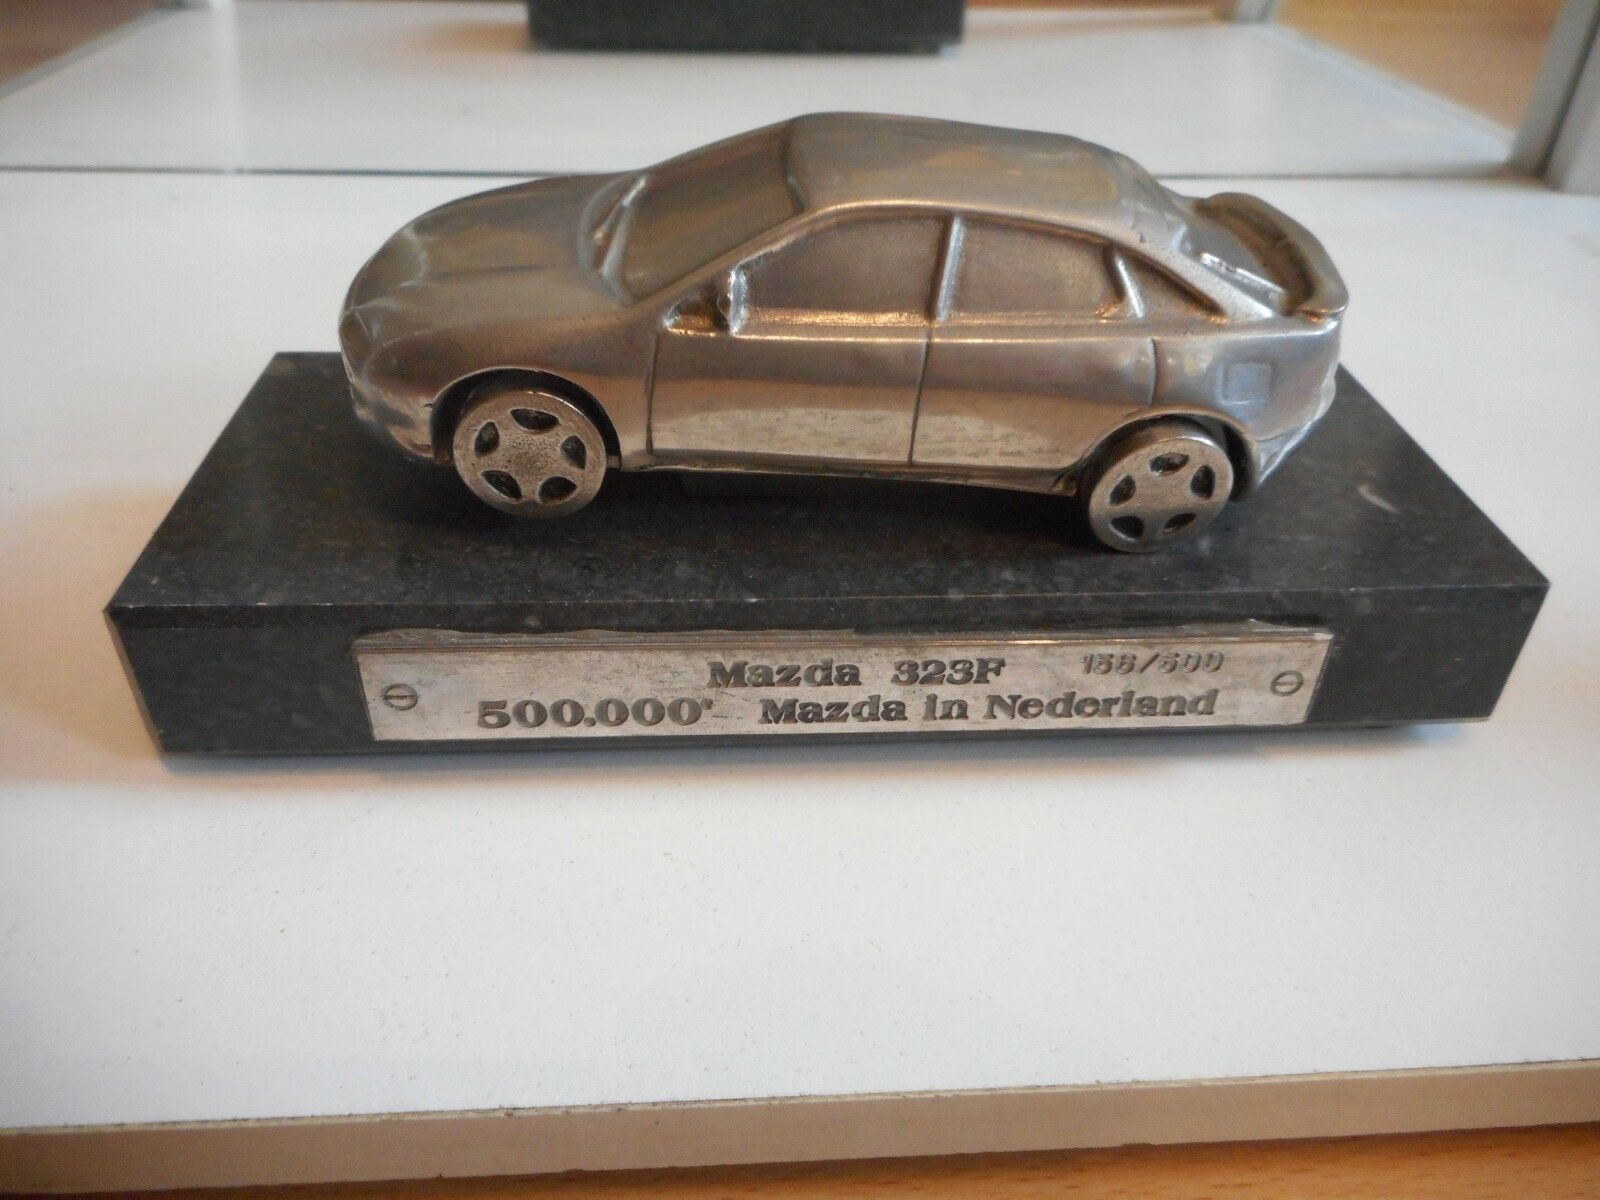 Dealer Gift Metal Mazda 323f  500.000 Mazda in Nederland  (Only 500 Made)